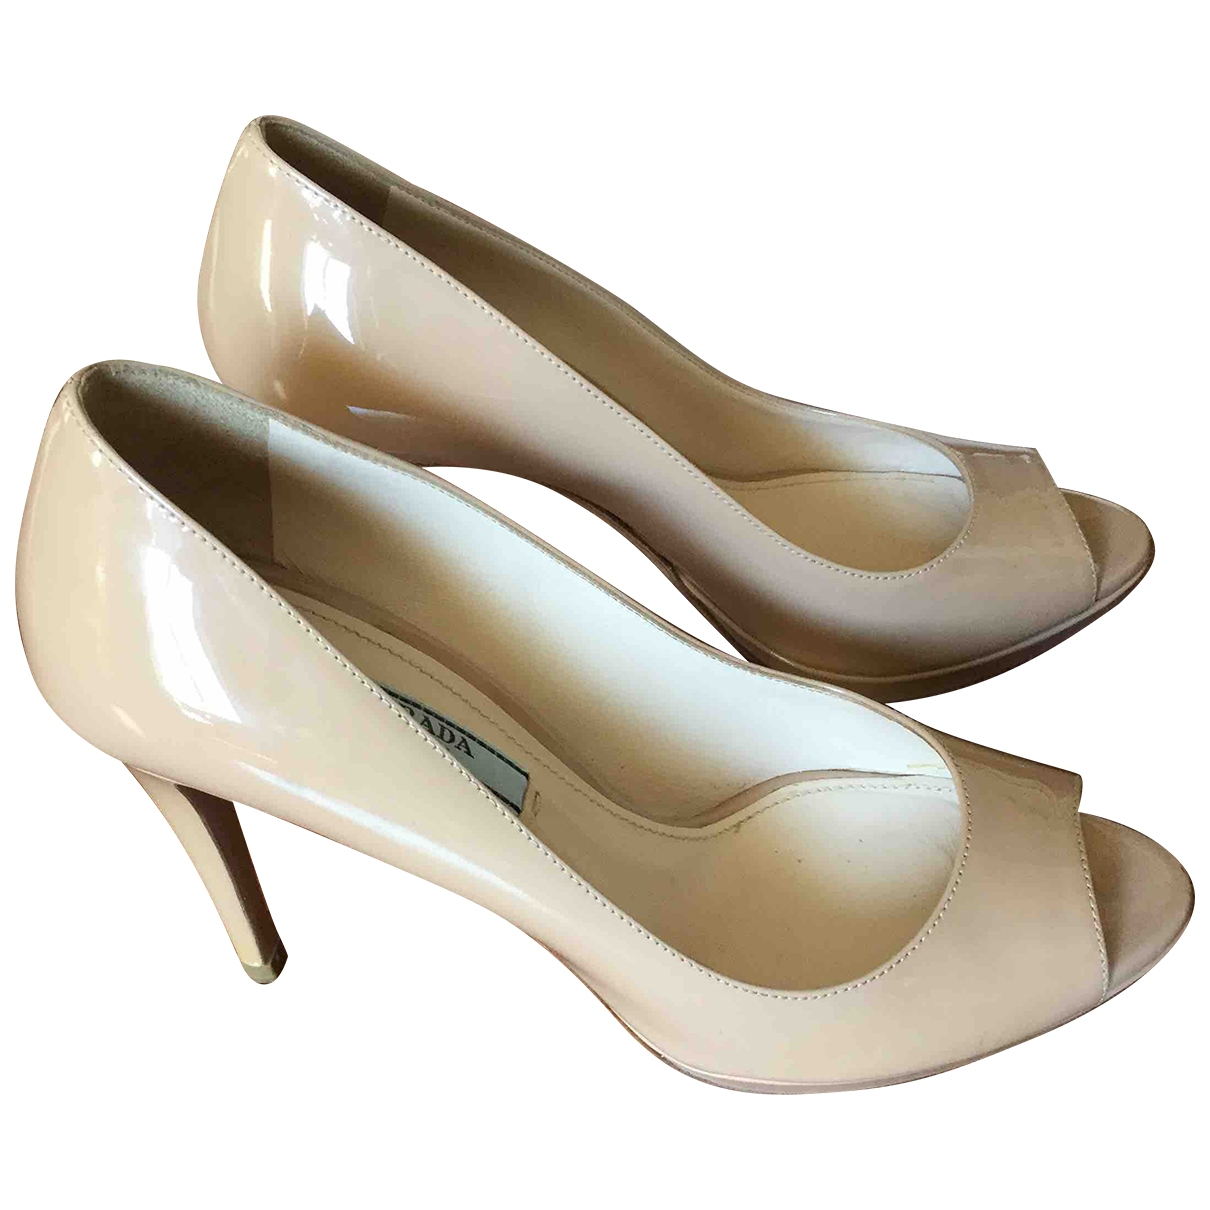 Prada \N Ecru Patent leather Heels for Women 36 IT